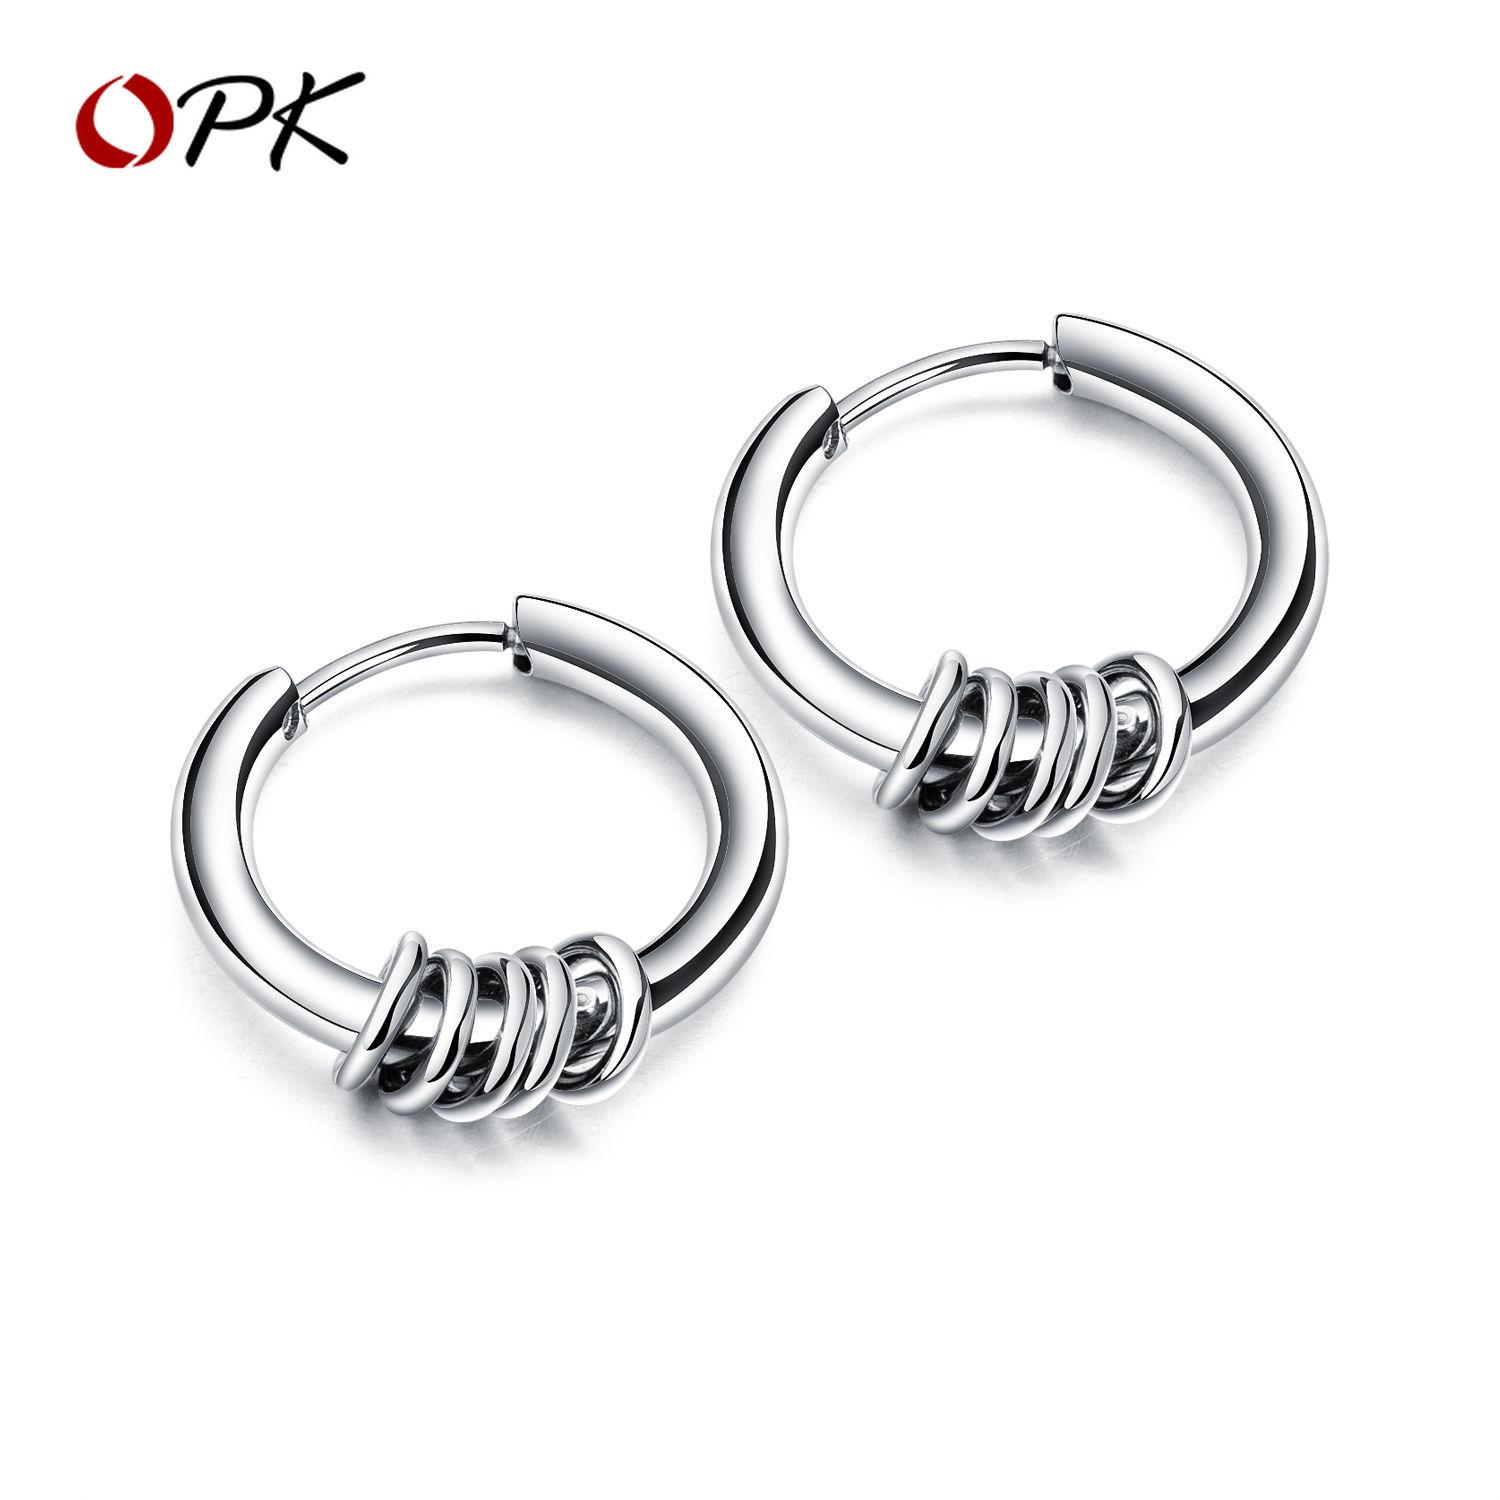 7c76e266b6b43 OPK men earrings Korean version of the same paragraph titanium steel  earrings stainless steel ear ring hipster accessories wild personality  circle ...